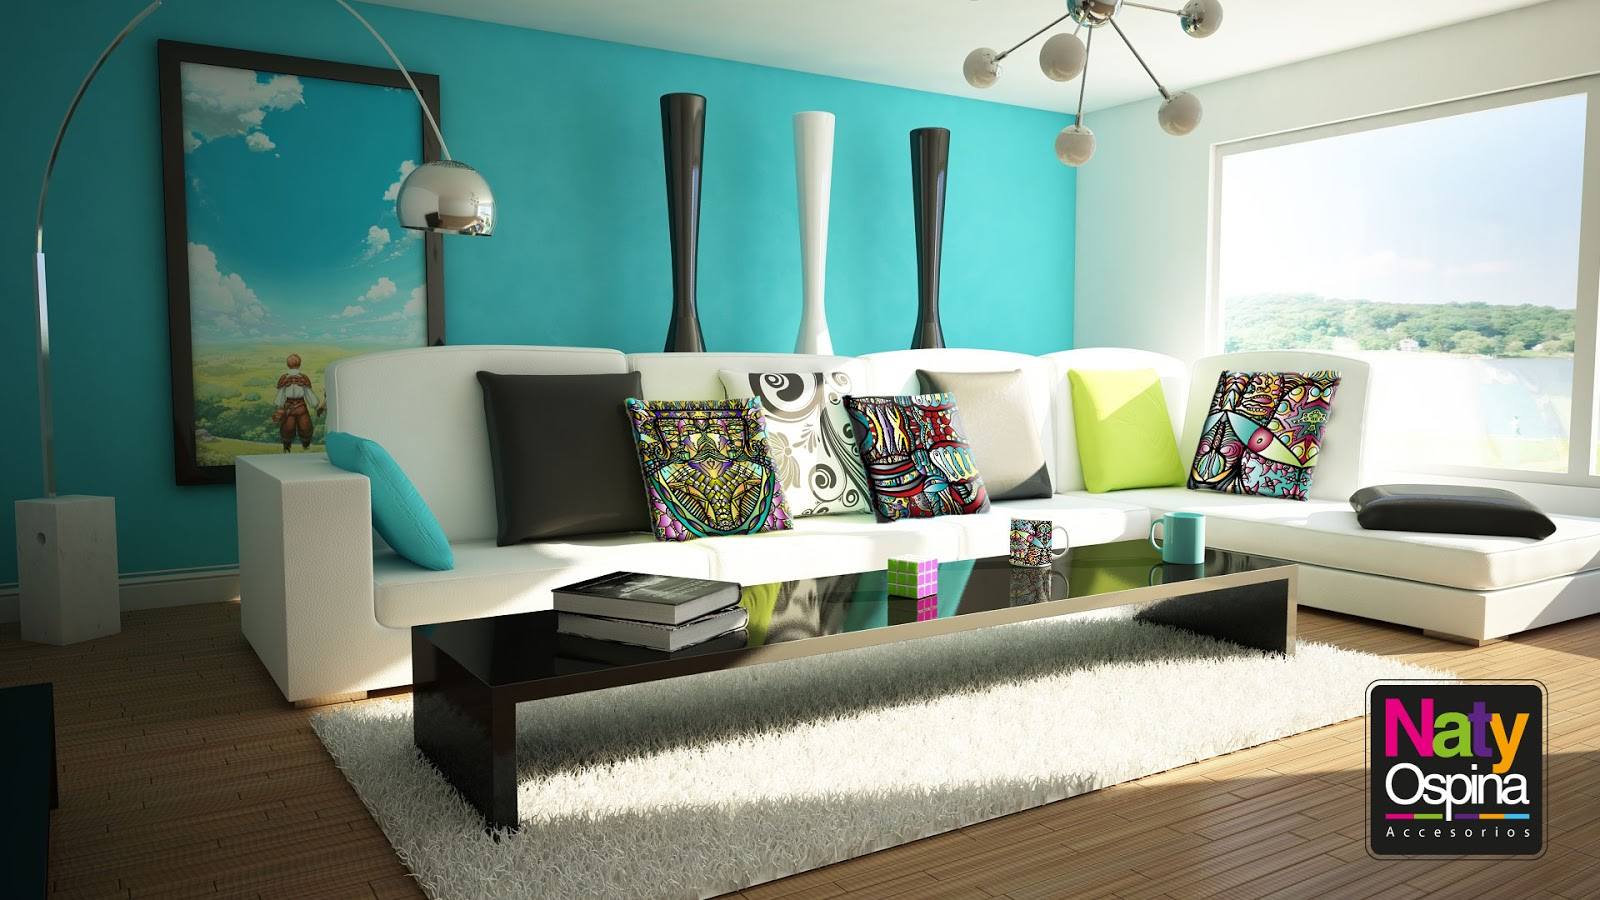 b and q living room ideas naty ospina productos decoraci 211 n de interiores 26527